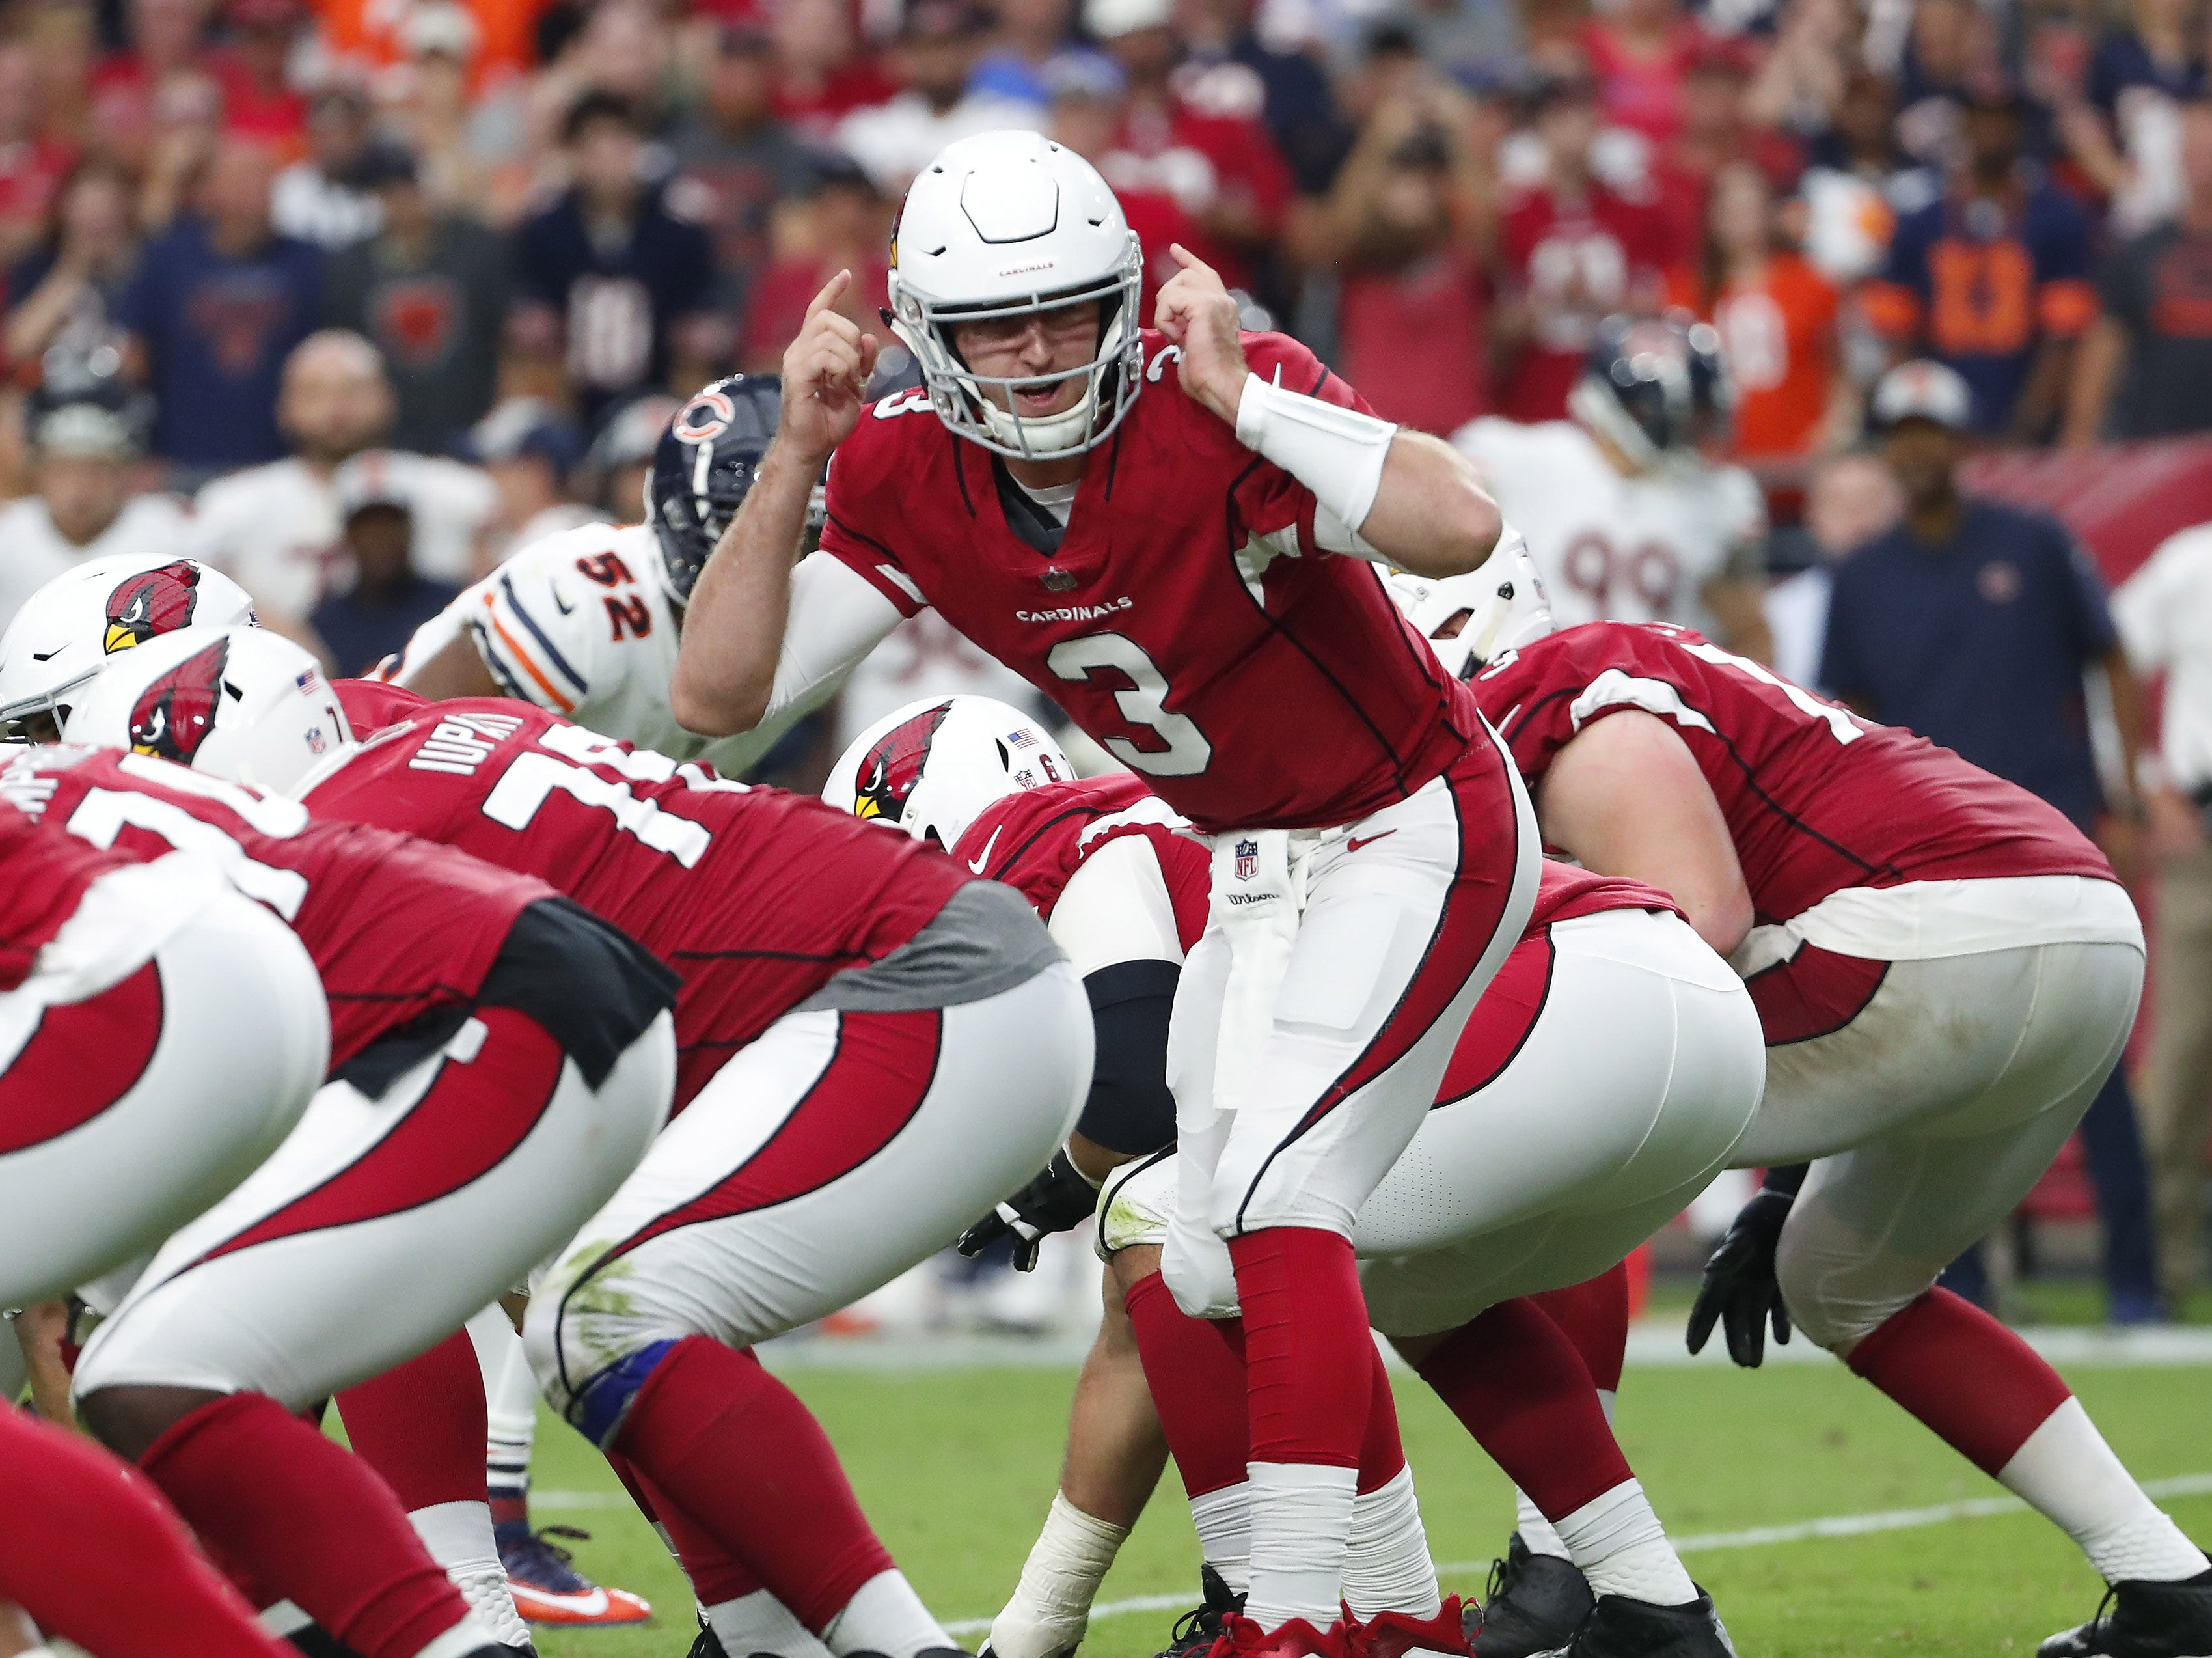 Cardinals quarterback Josh Rosen completed 4 of 7 passes for 36 yards with an interception in his NFL debut on Sunday.